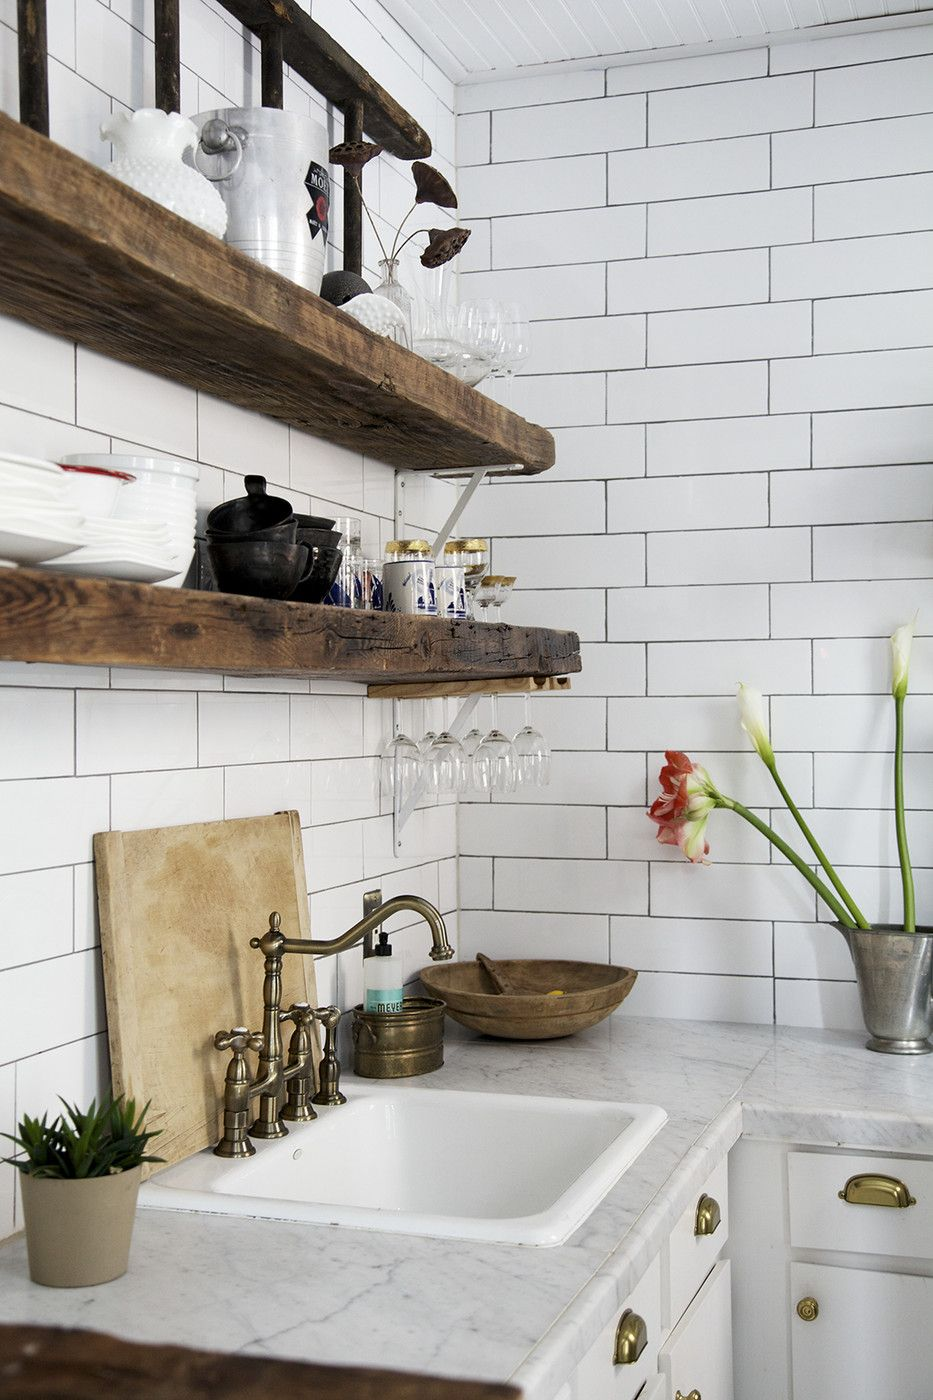 Rustic Industrial Kitchen Kitchen Photos Open Shelving Industrial And Vintage Kitchen